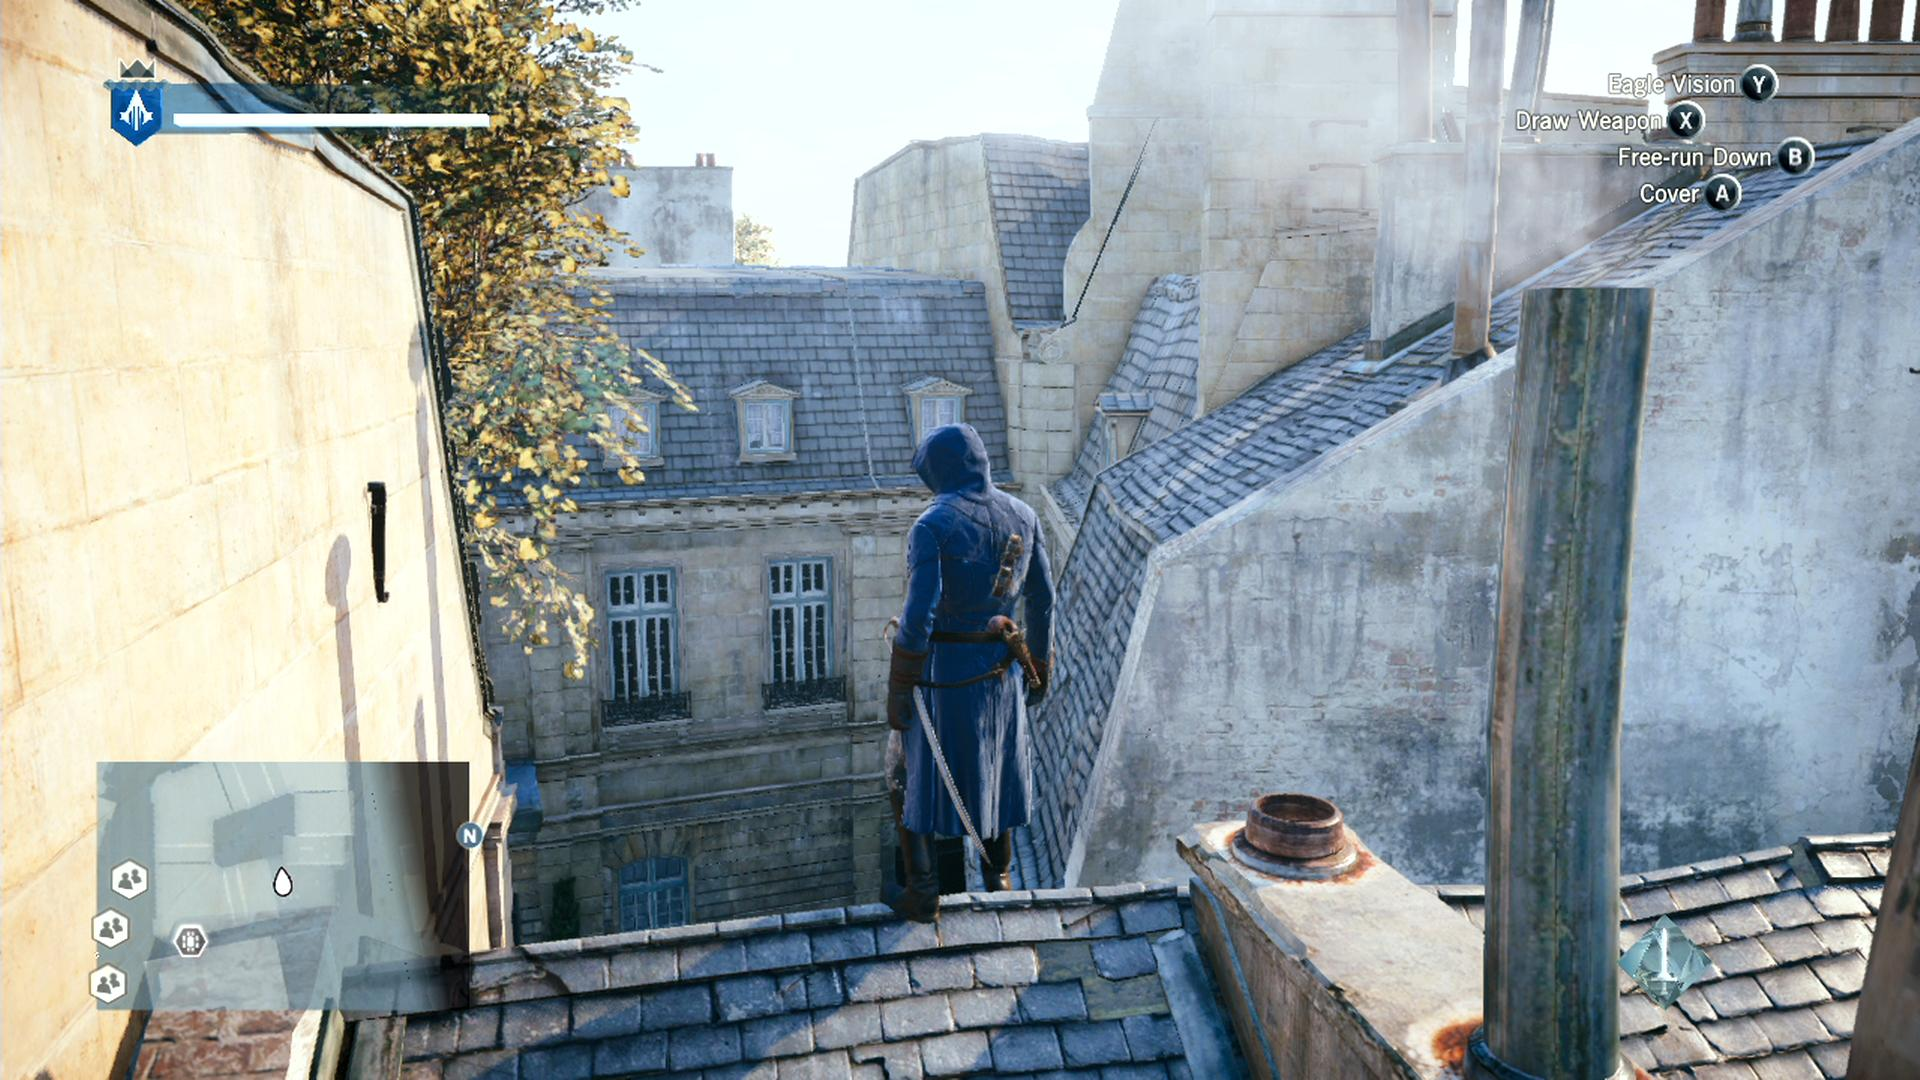 Assassin S Creed Unity Screenshots Leaked From Beta Xbox One Build